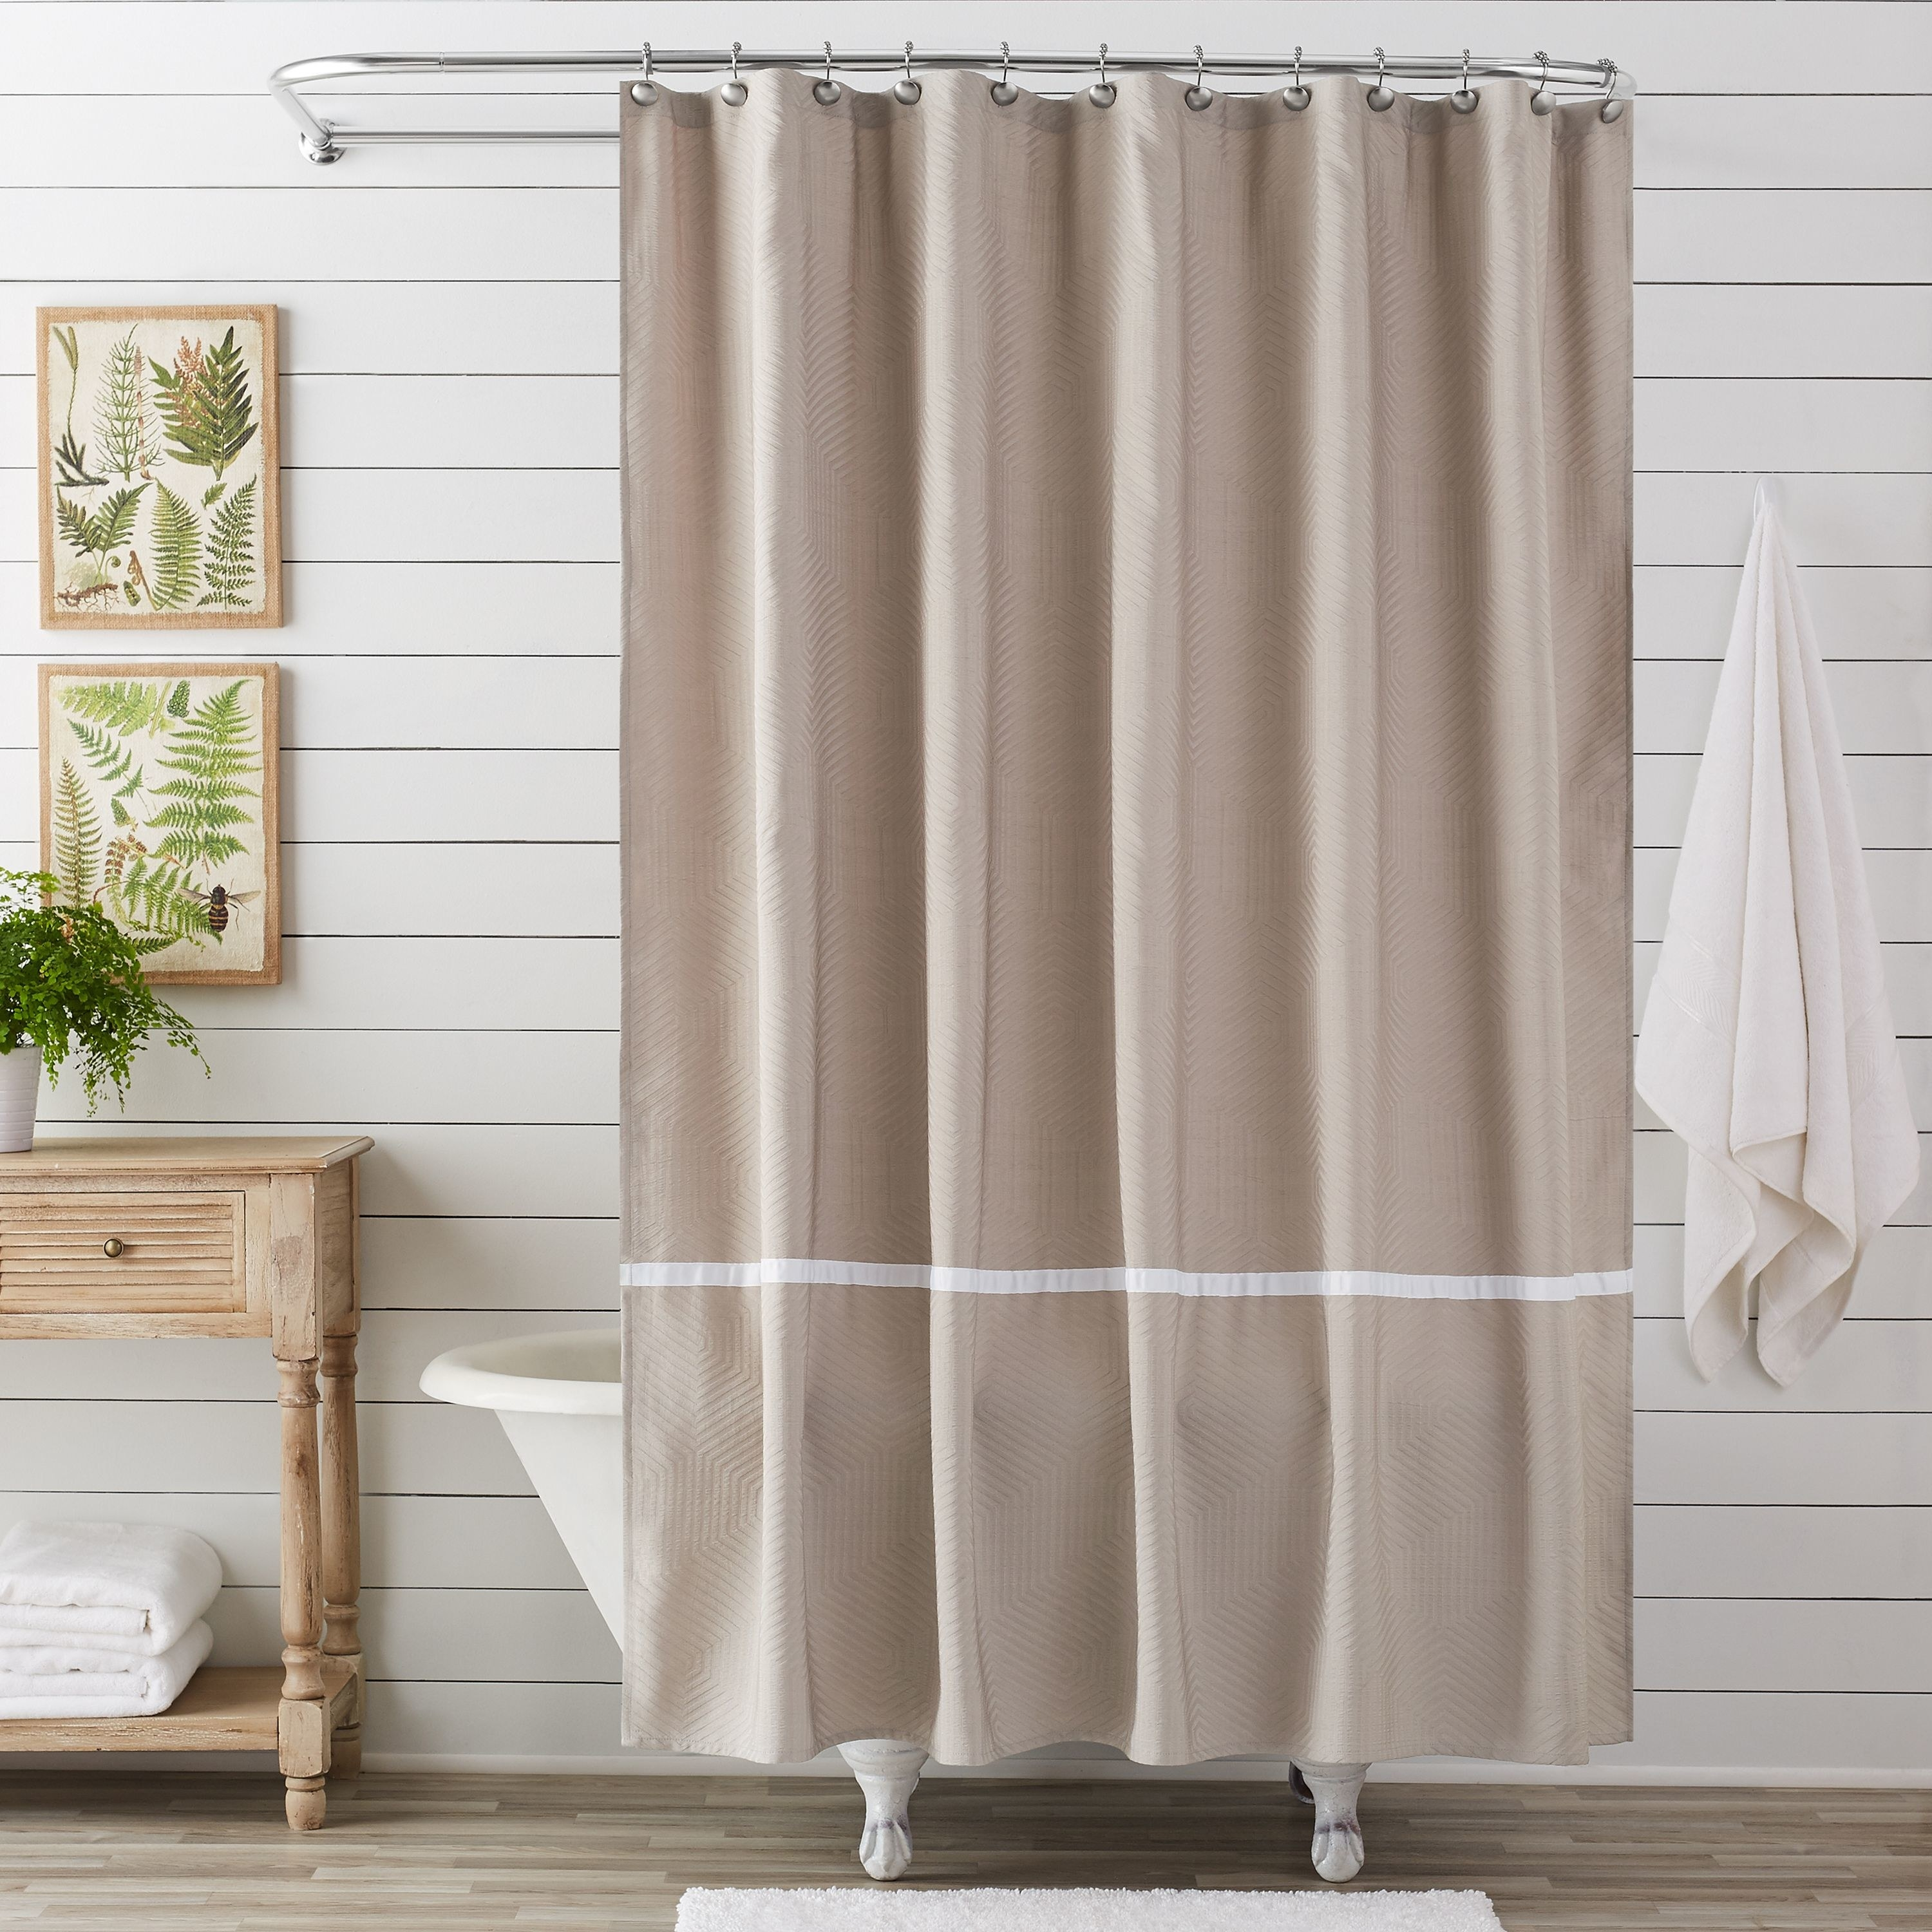 taupe shower curtain with a white stripe at the bottom